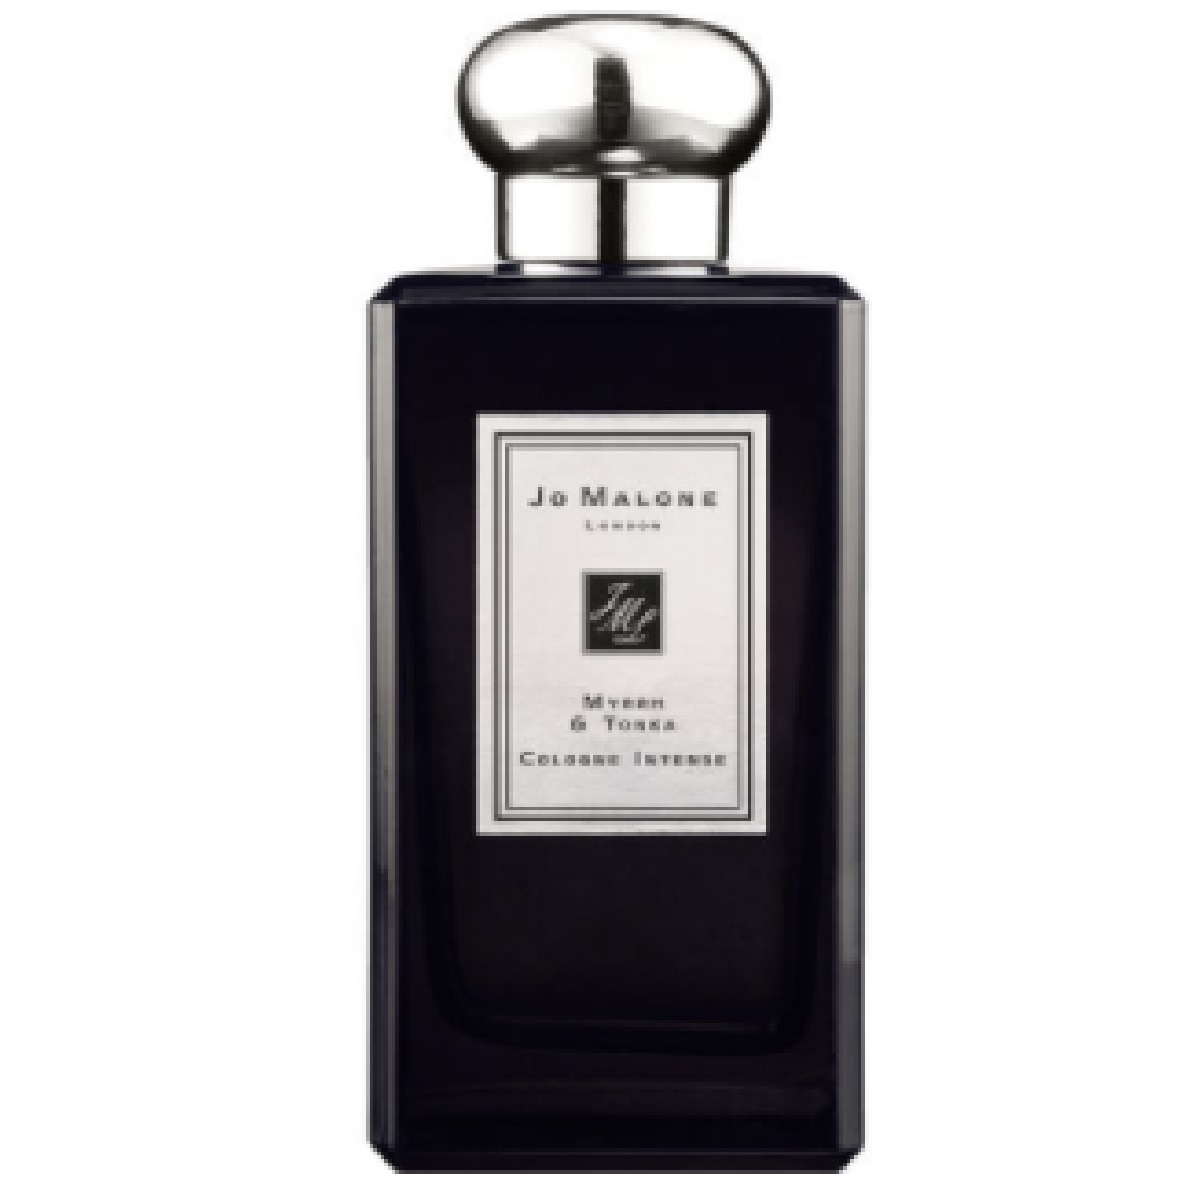 JO MALONE LONDON MYRRH & TONKA COLOGNE INTENSE